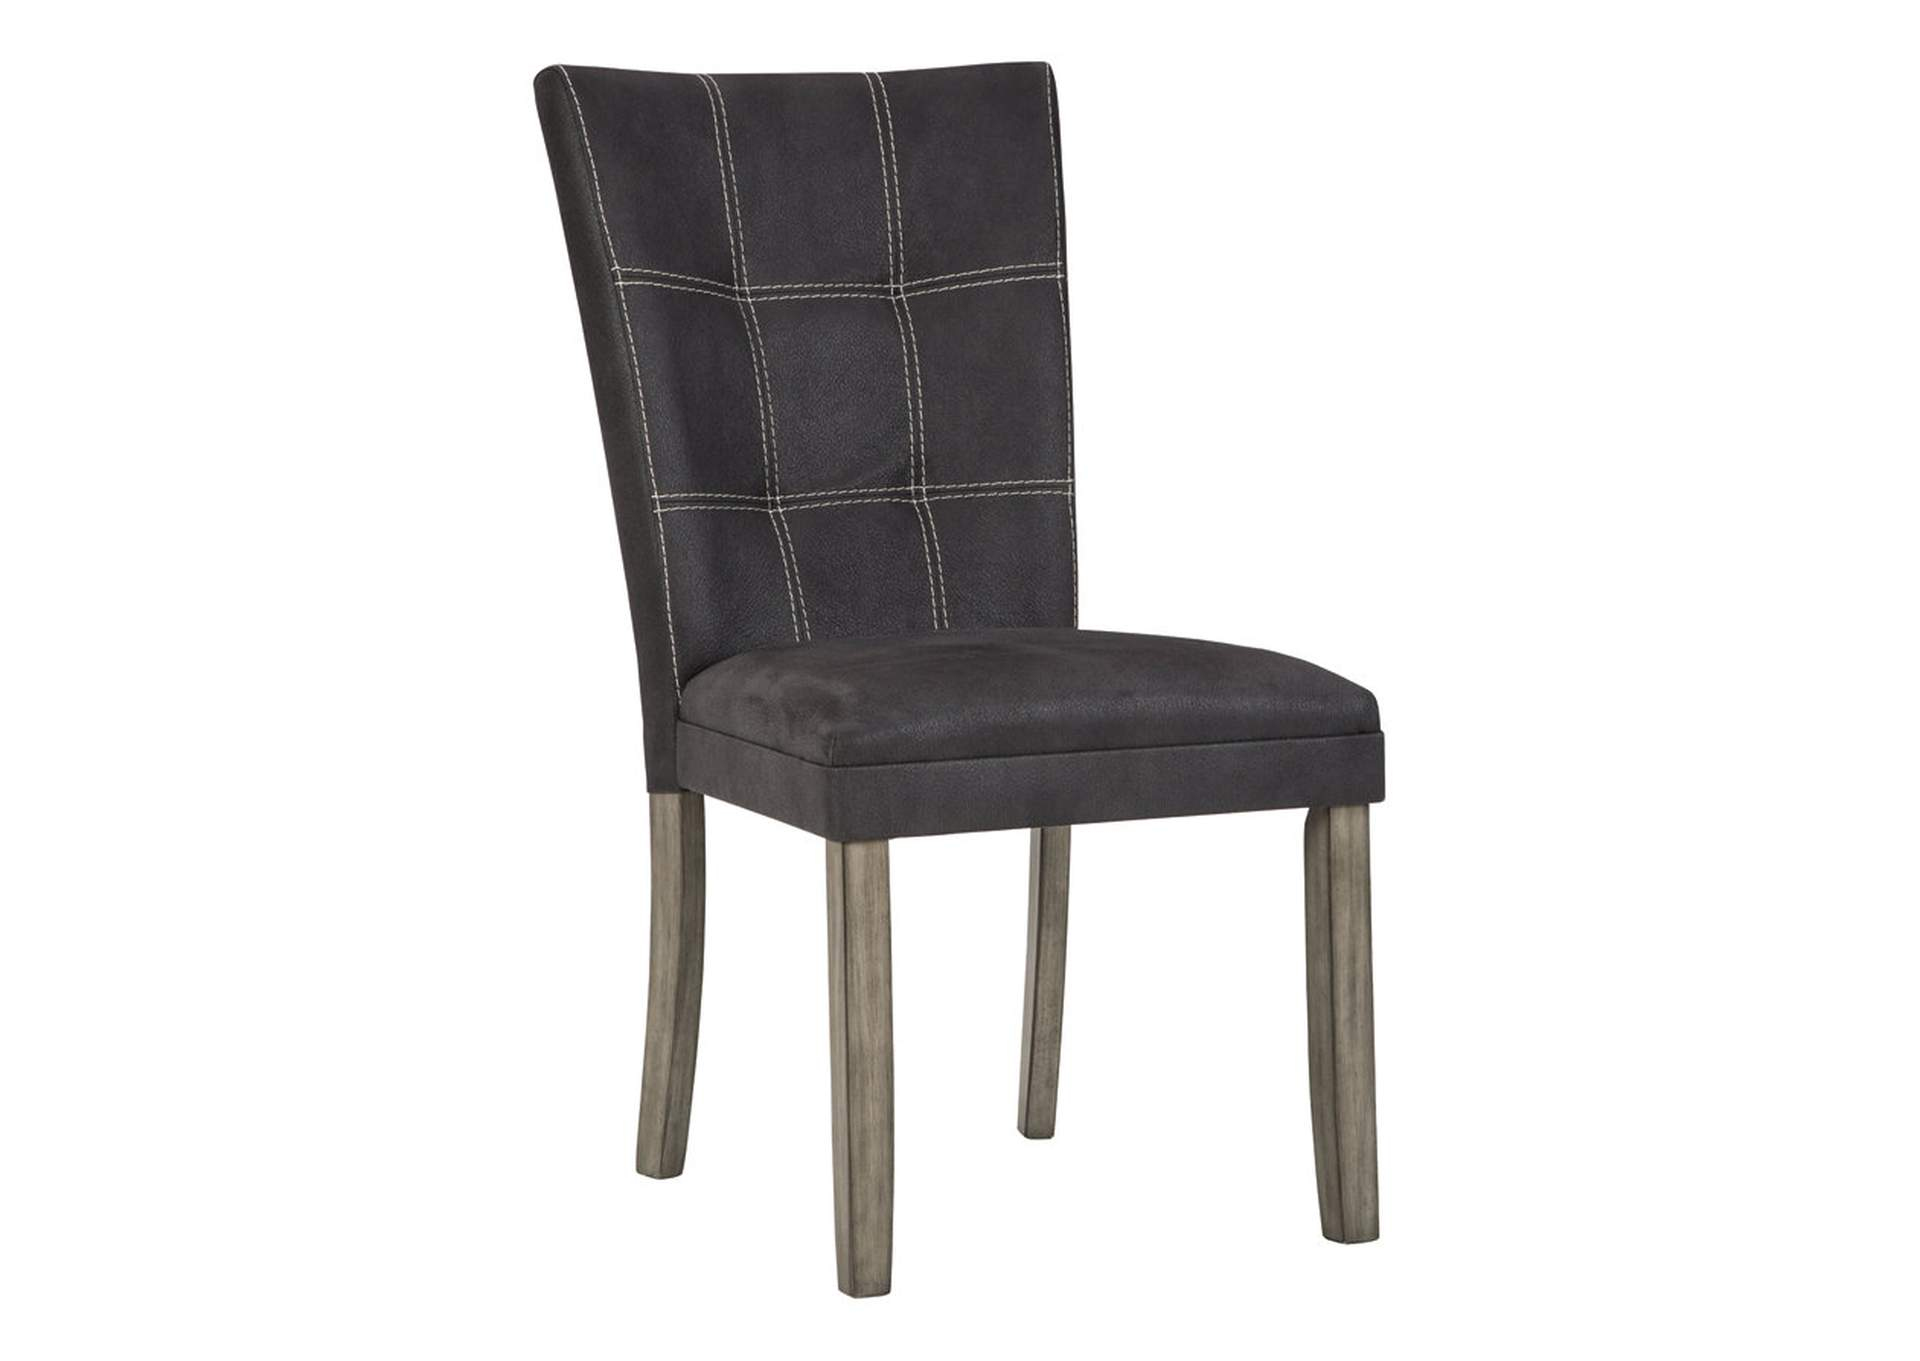 Dontally Dining Room Chair,Benchcraft